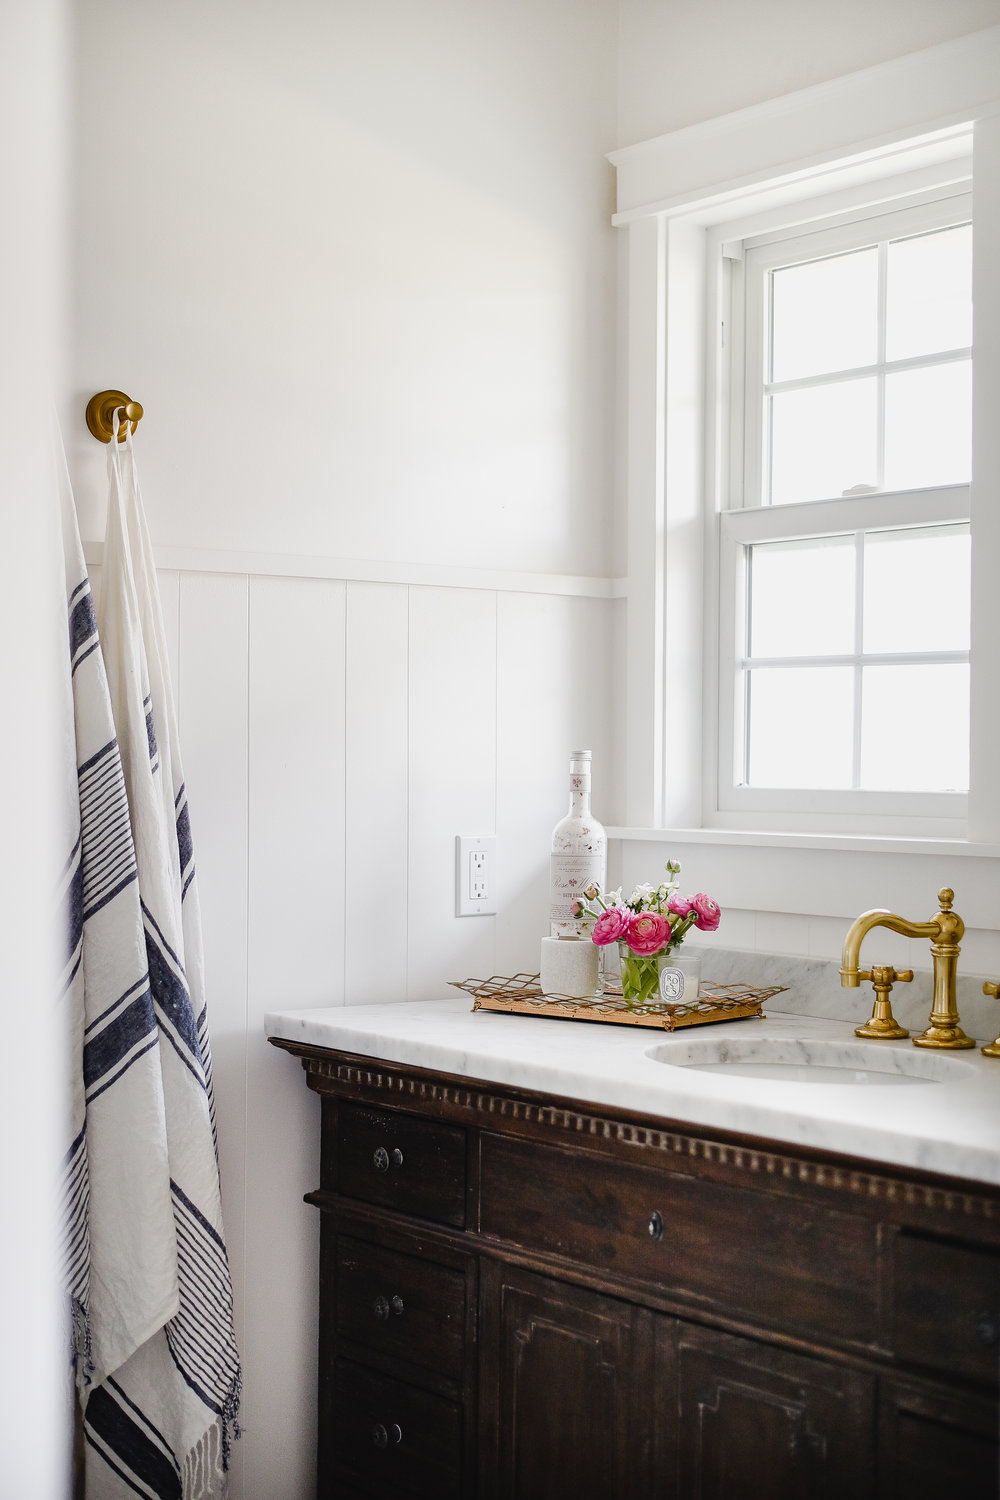 Marble countertop in bathroom with vintage brass hardware | boxwoodavenue.com